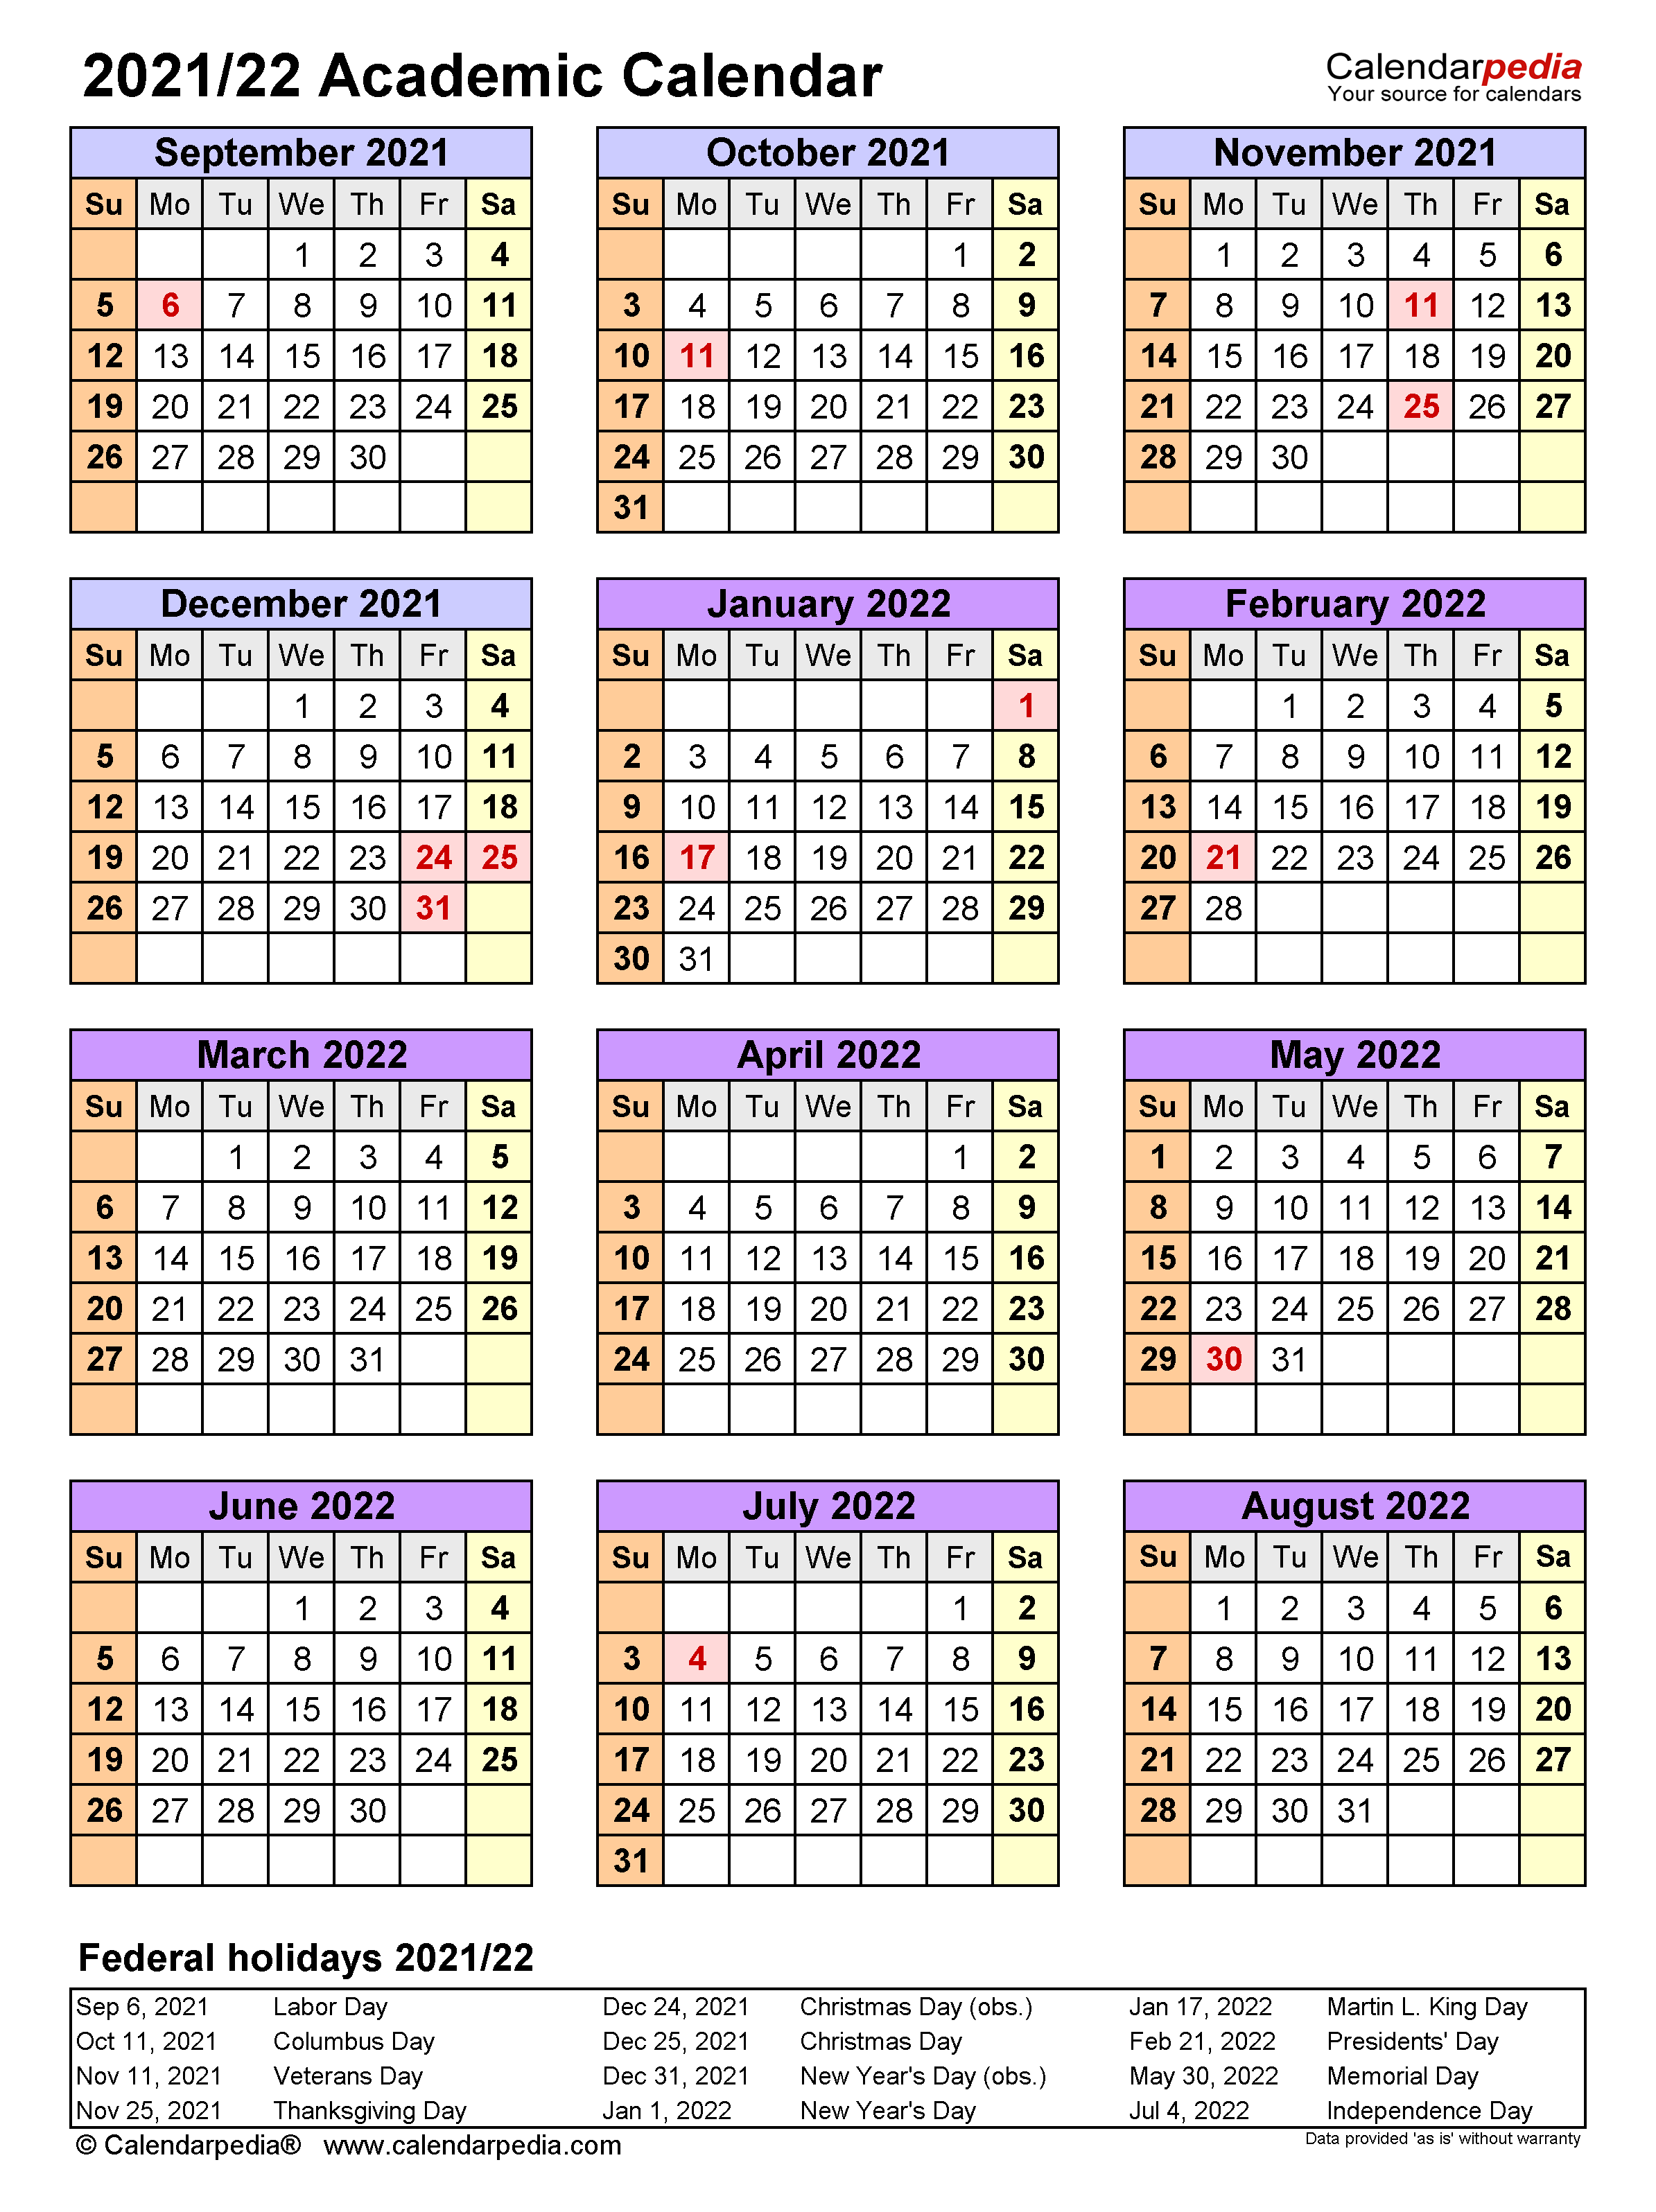 Uw Academic Calendar 2022.W A S H U C A L E N D A R 2 0 2 1 Zonealarm Results